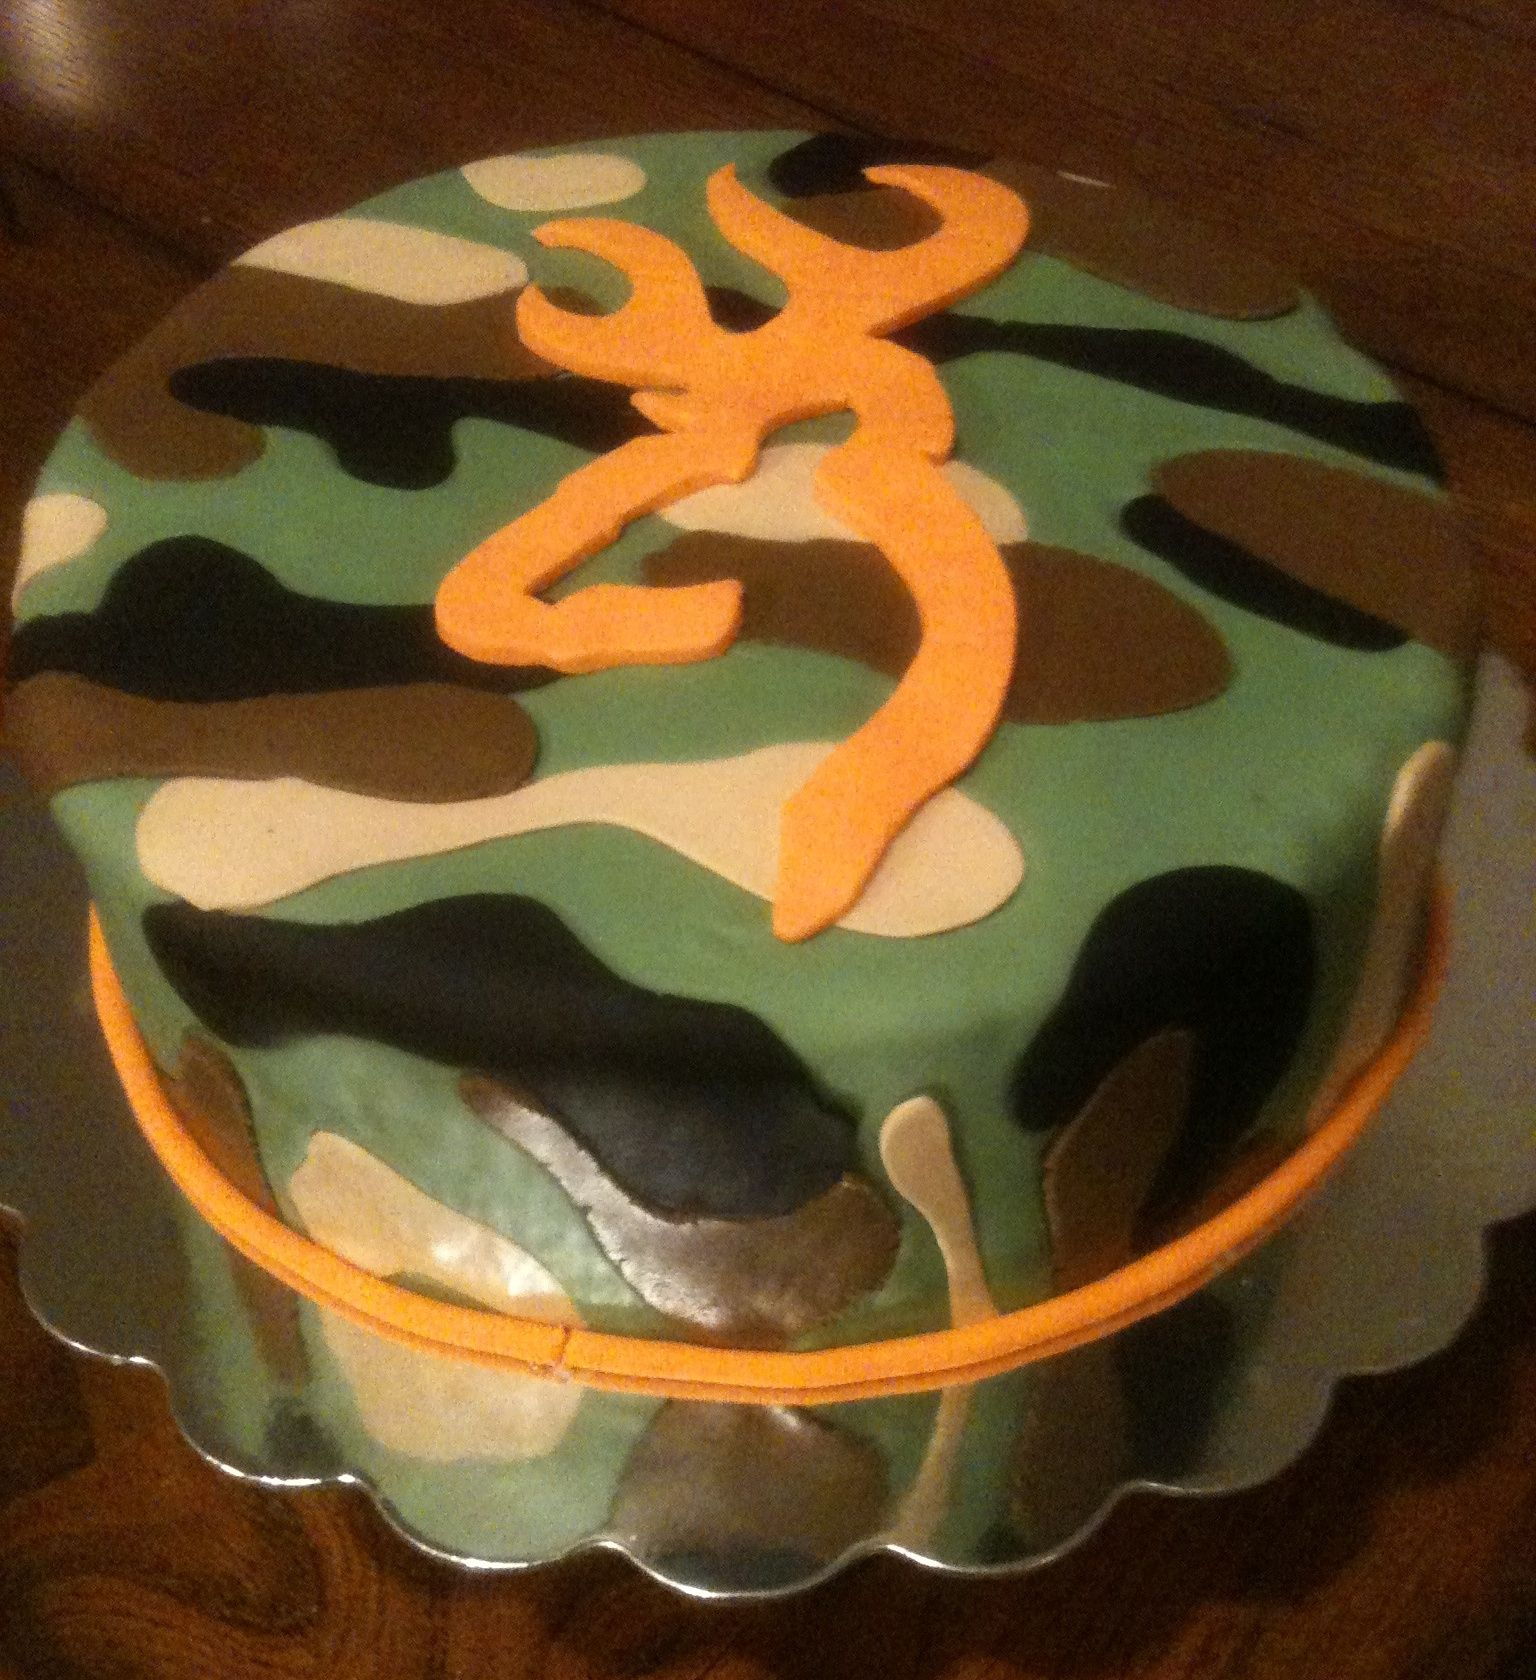 Camo browning cake camouflage cake with browning symbol cakes camo browning cake camouflage cake with browning symbol biocorpaavc Images